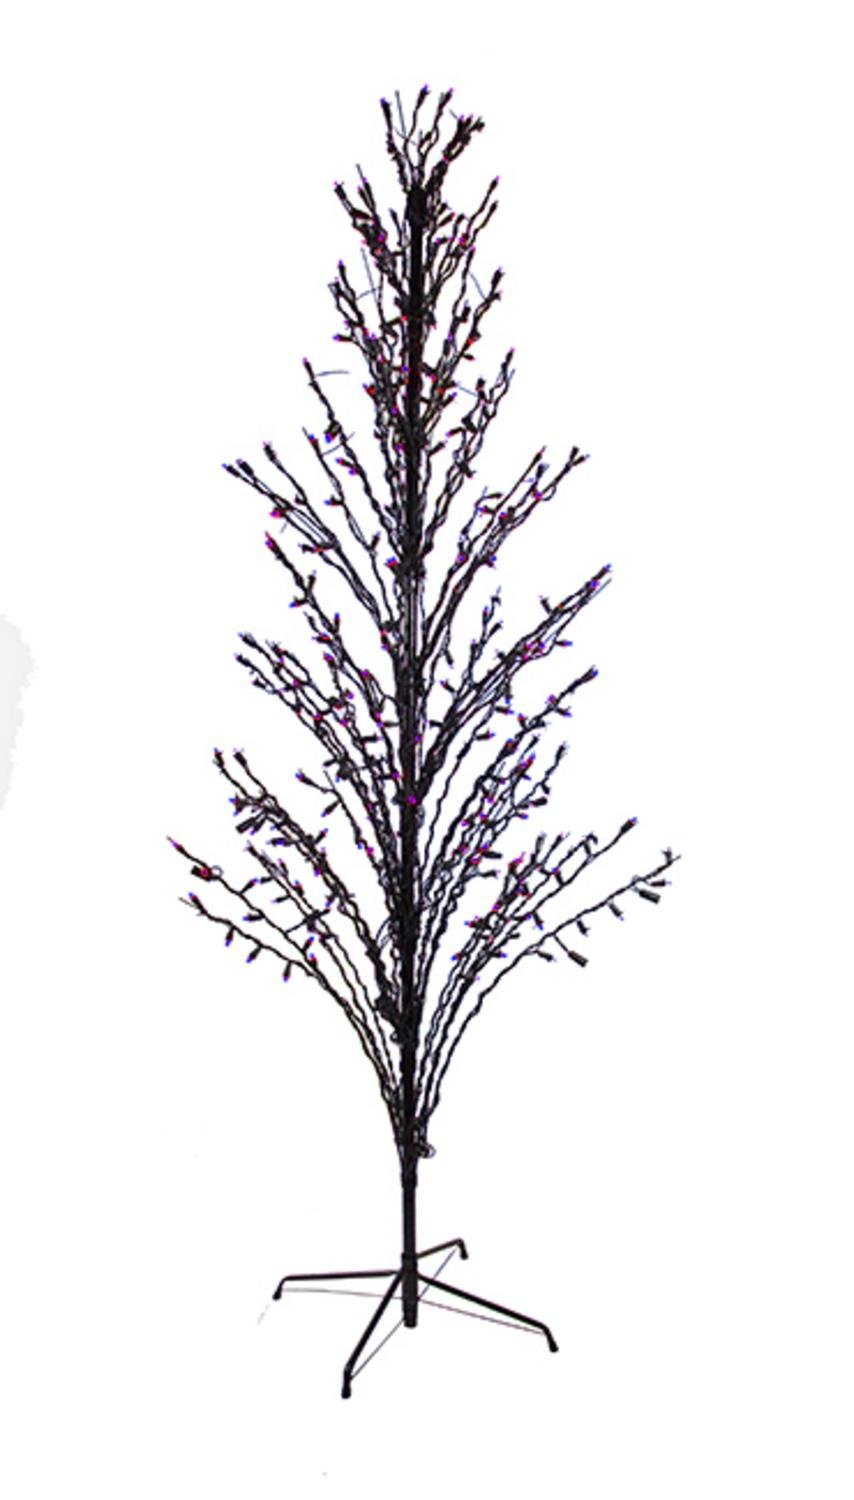 LB International LED Lighted Halloween Cascade Twig Tree Outdoor Yard Art Decoration, 6' , Purple